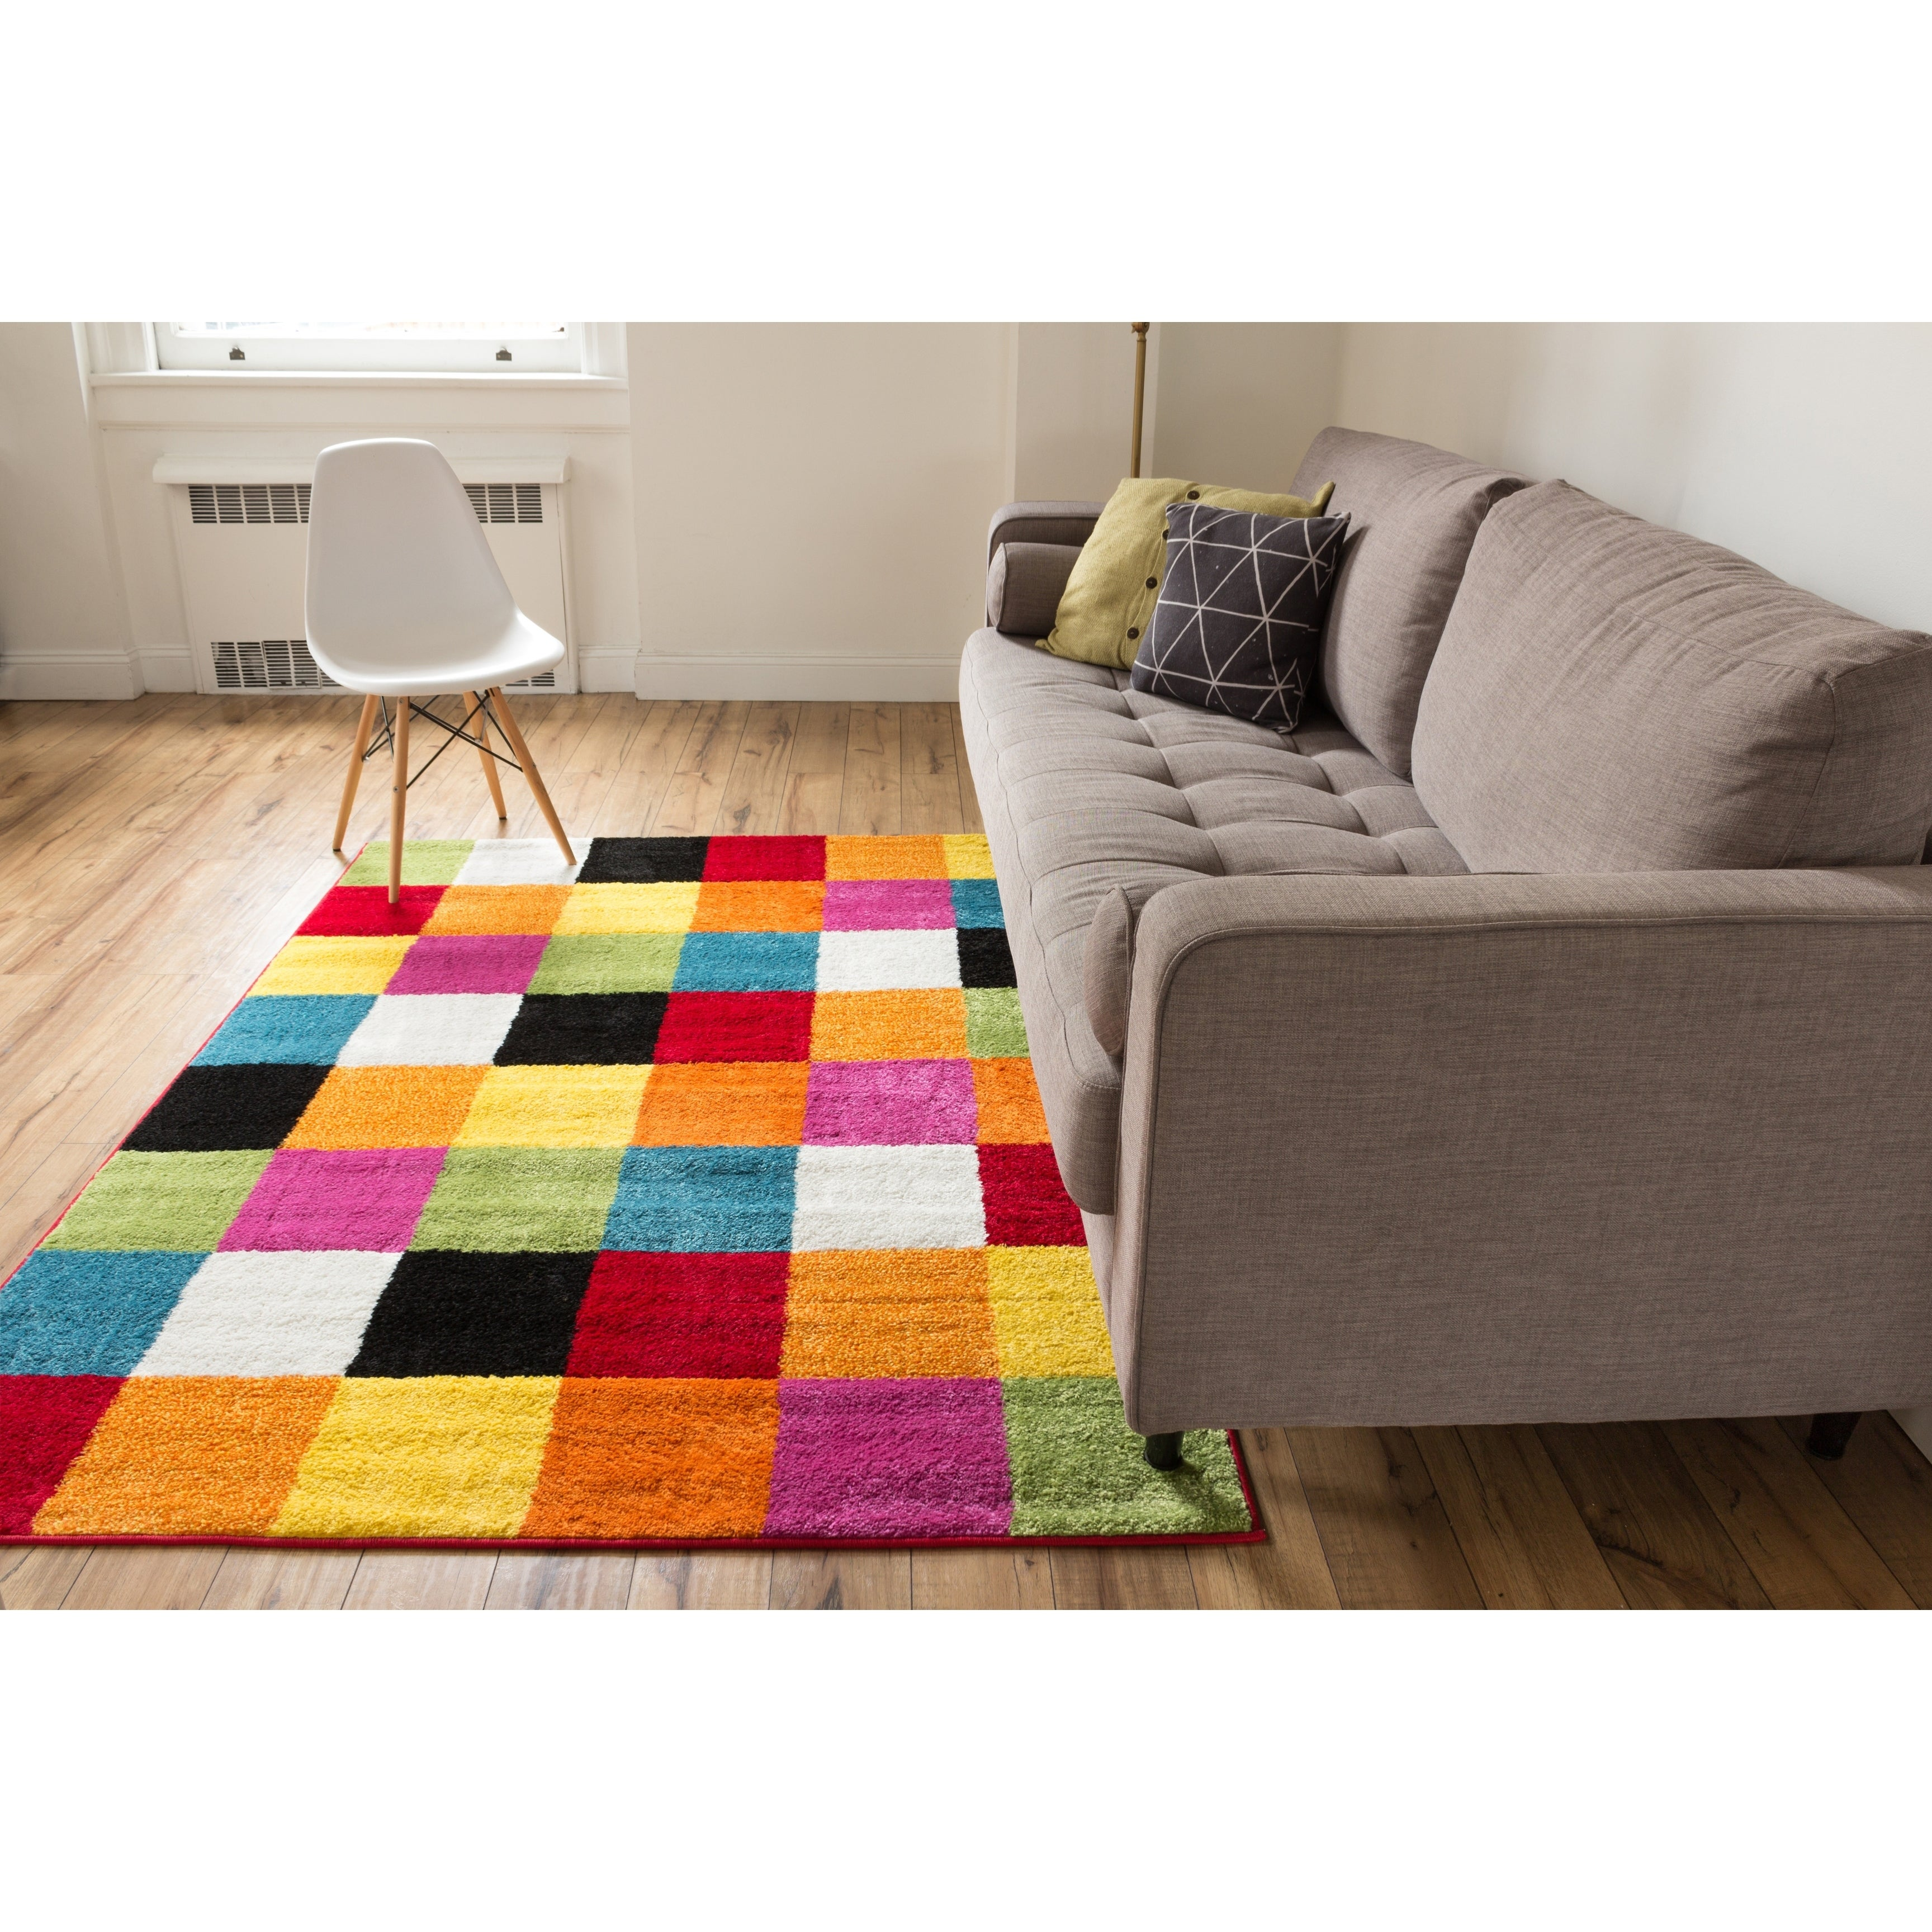 Well Woven Bright Geometric Square